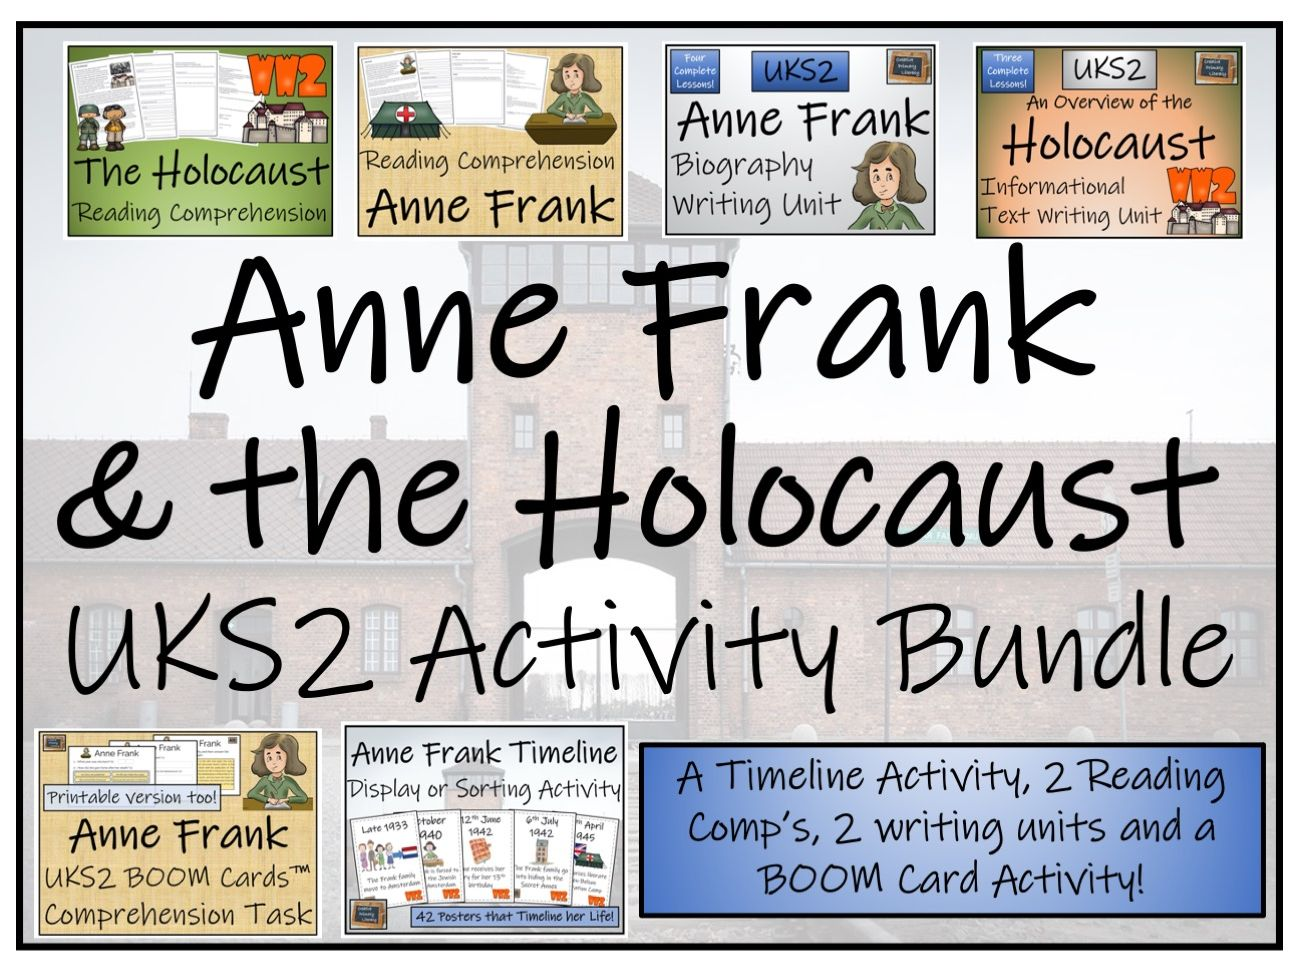 UKS2 The Holocaust & Anne Frank Bundle